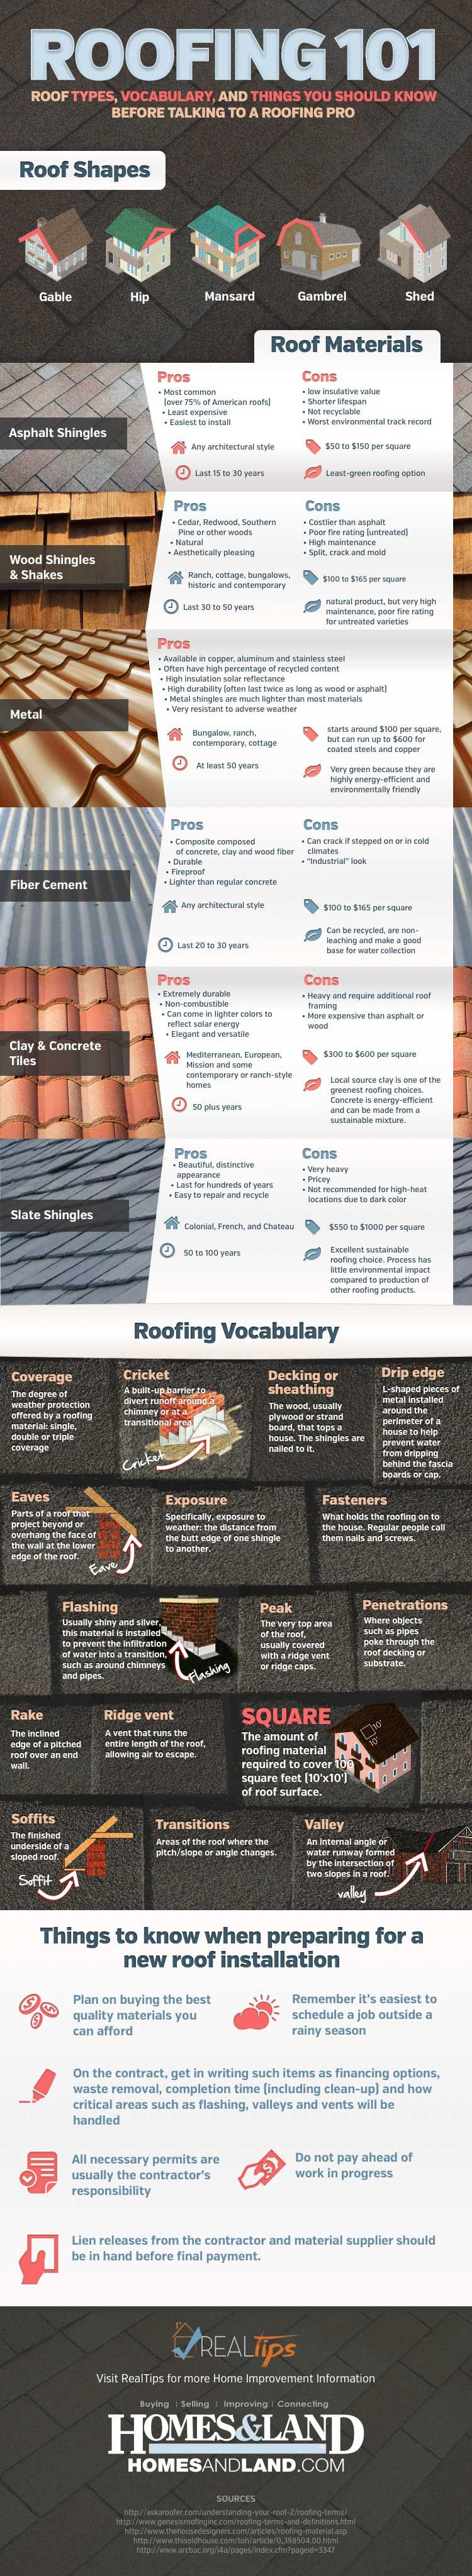 Roof Types Vocabulary And Things You Should Know Building A